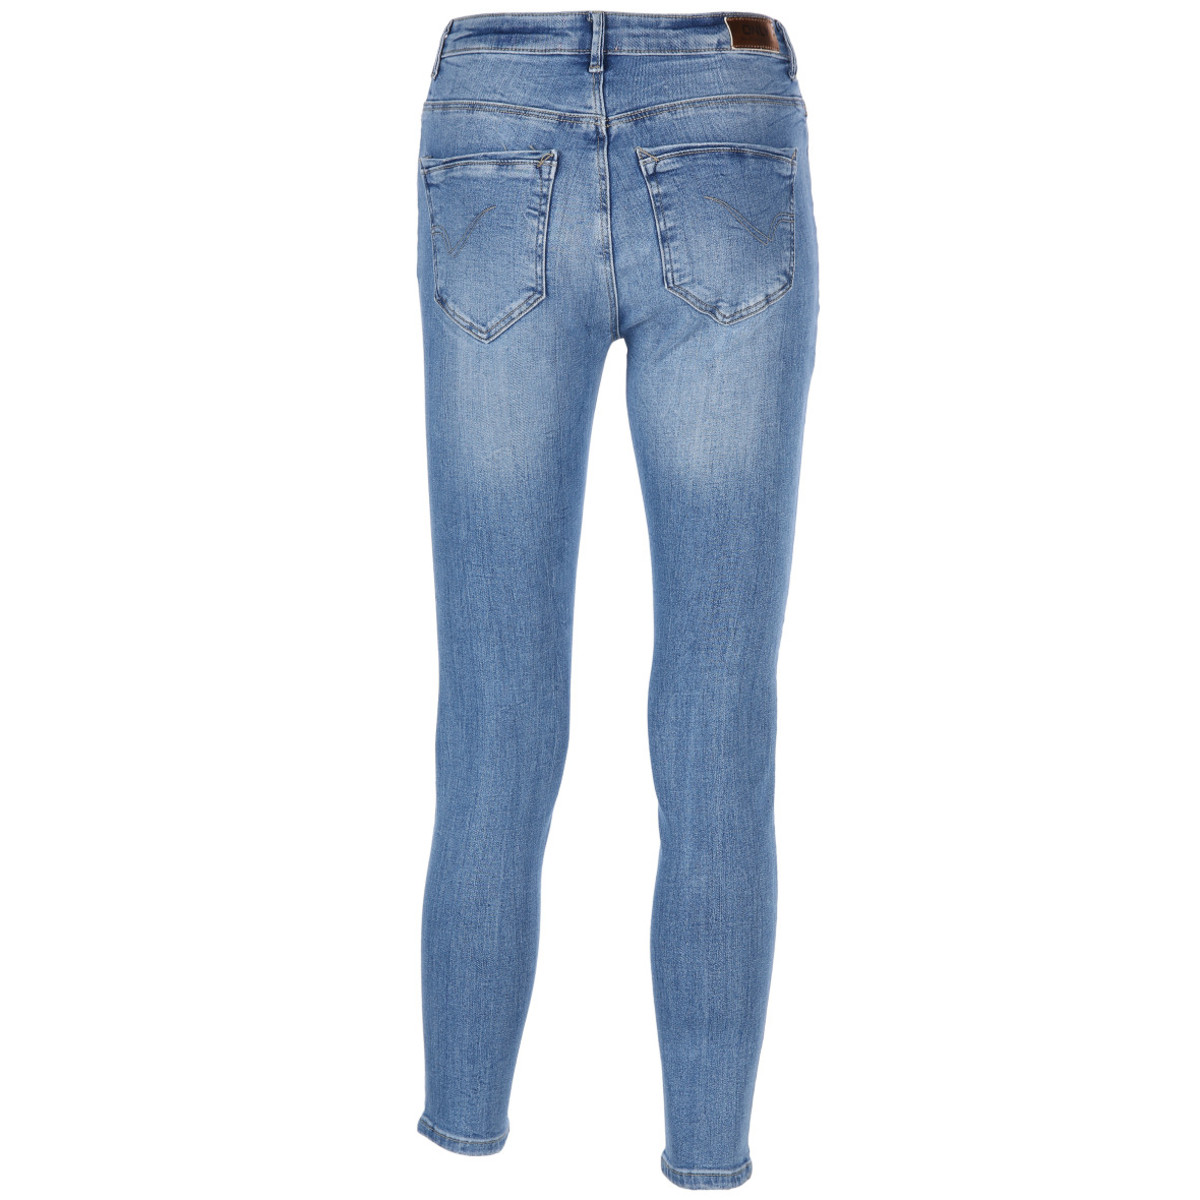 Bild 2 von Damen Only Jeans PAOLA High Waisted